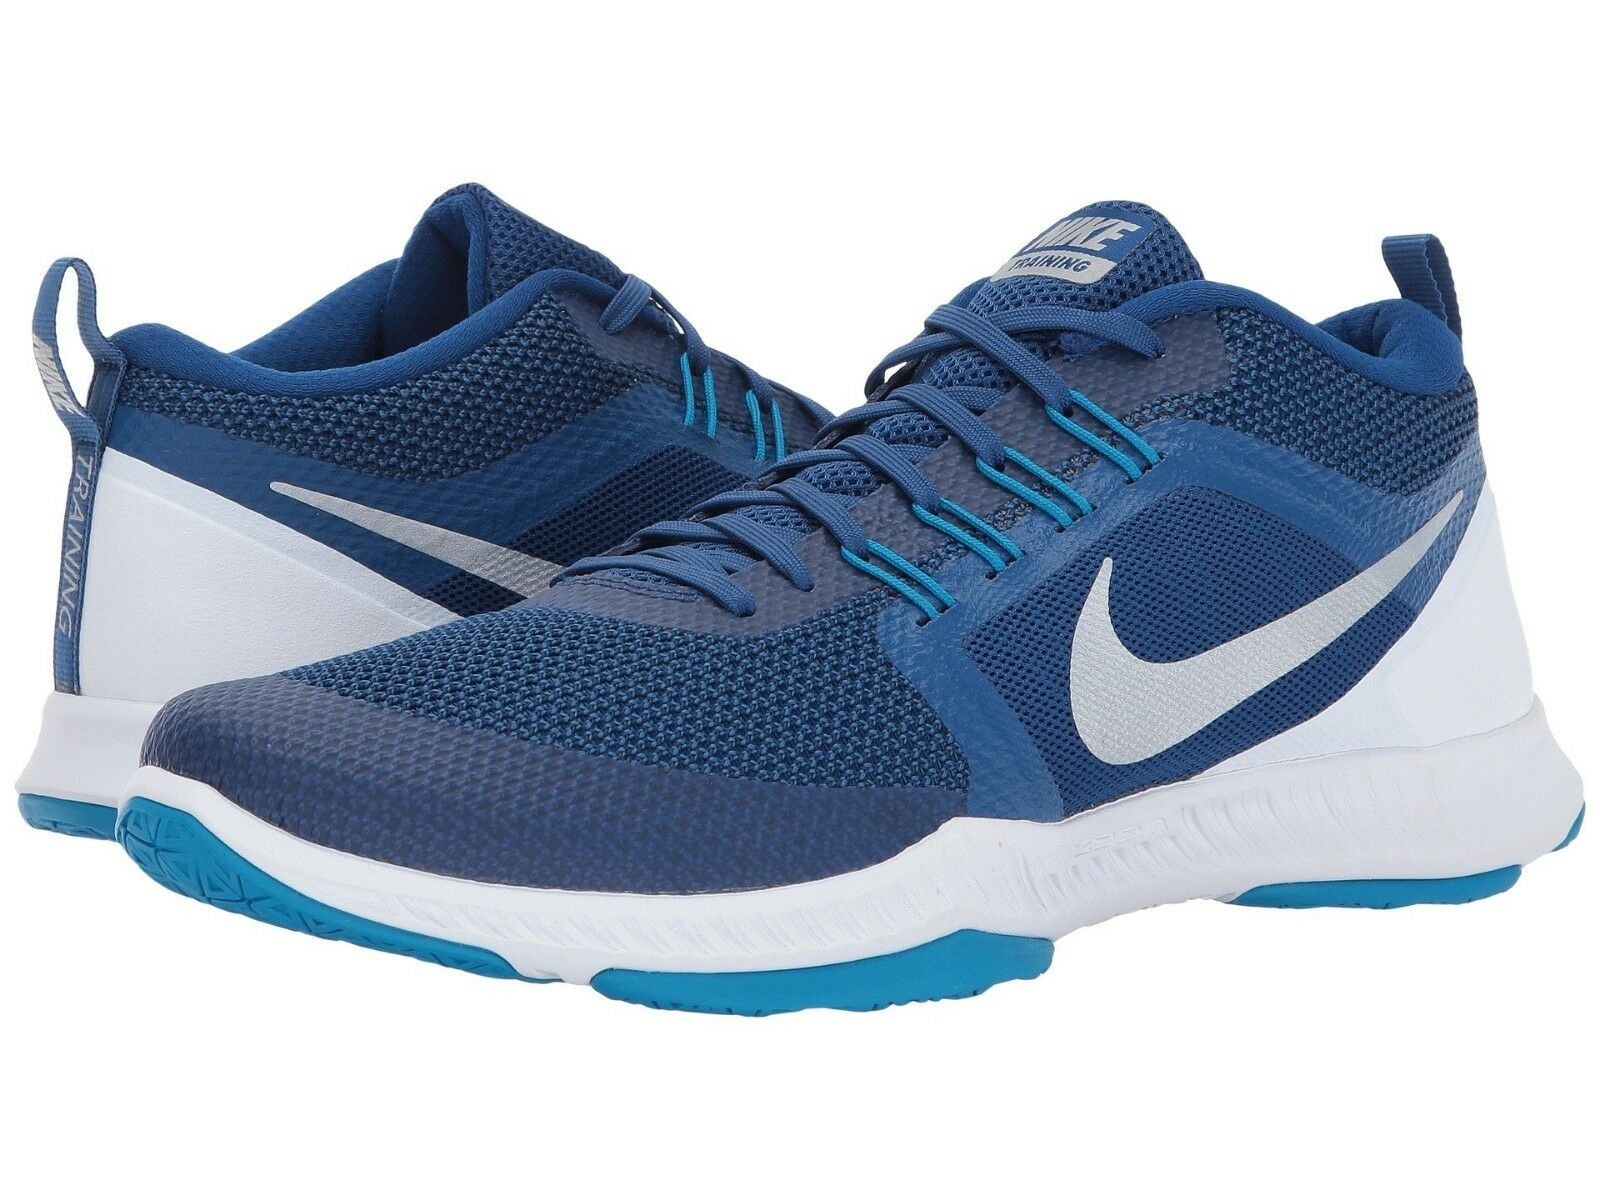 Men's Nike Nike Nike Zoom Domination TR Training Shoes